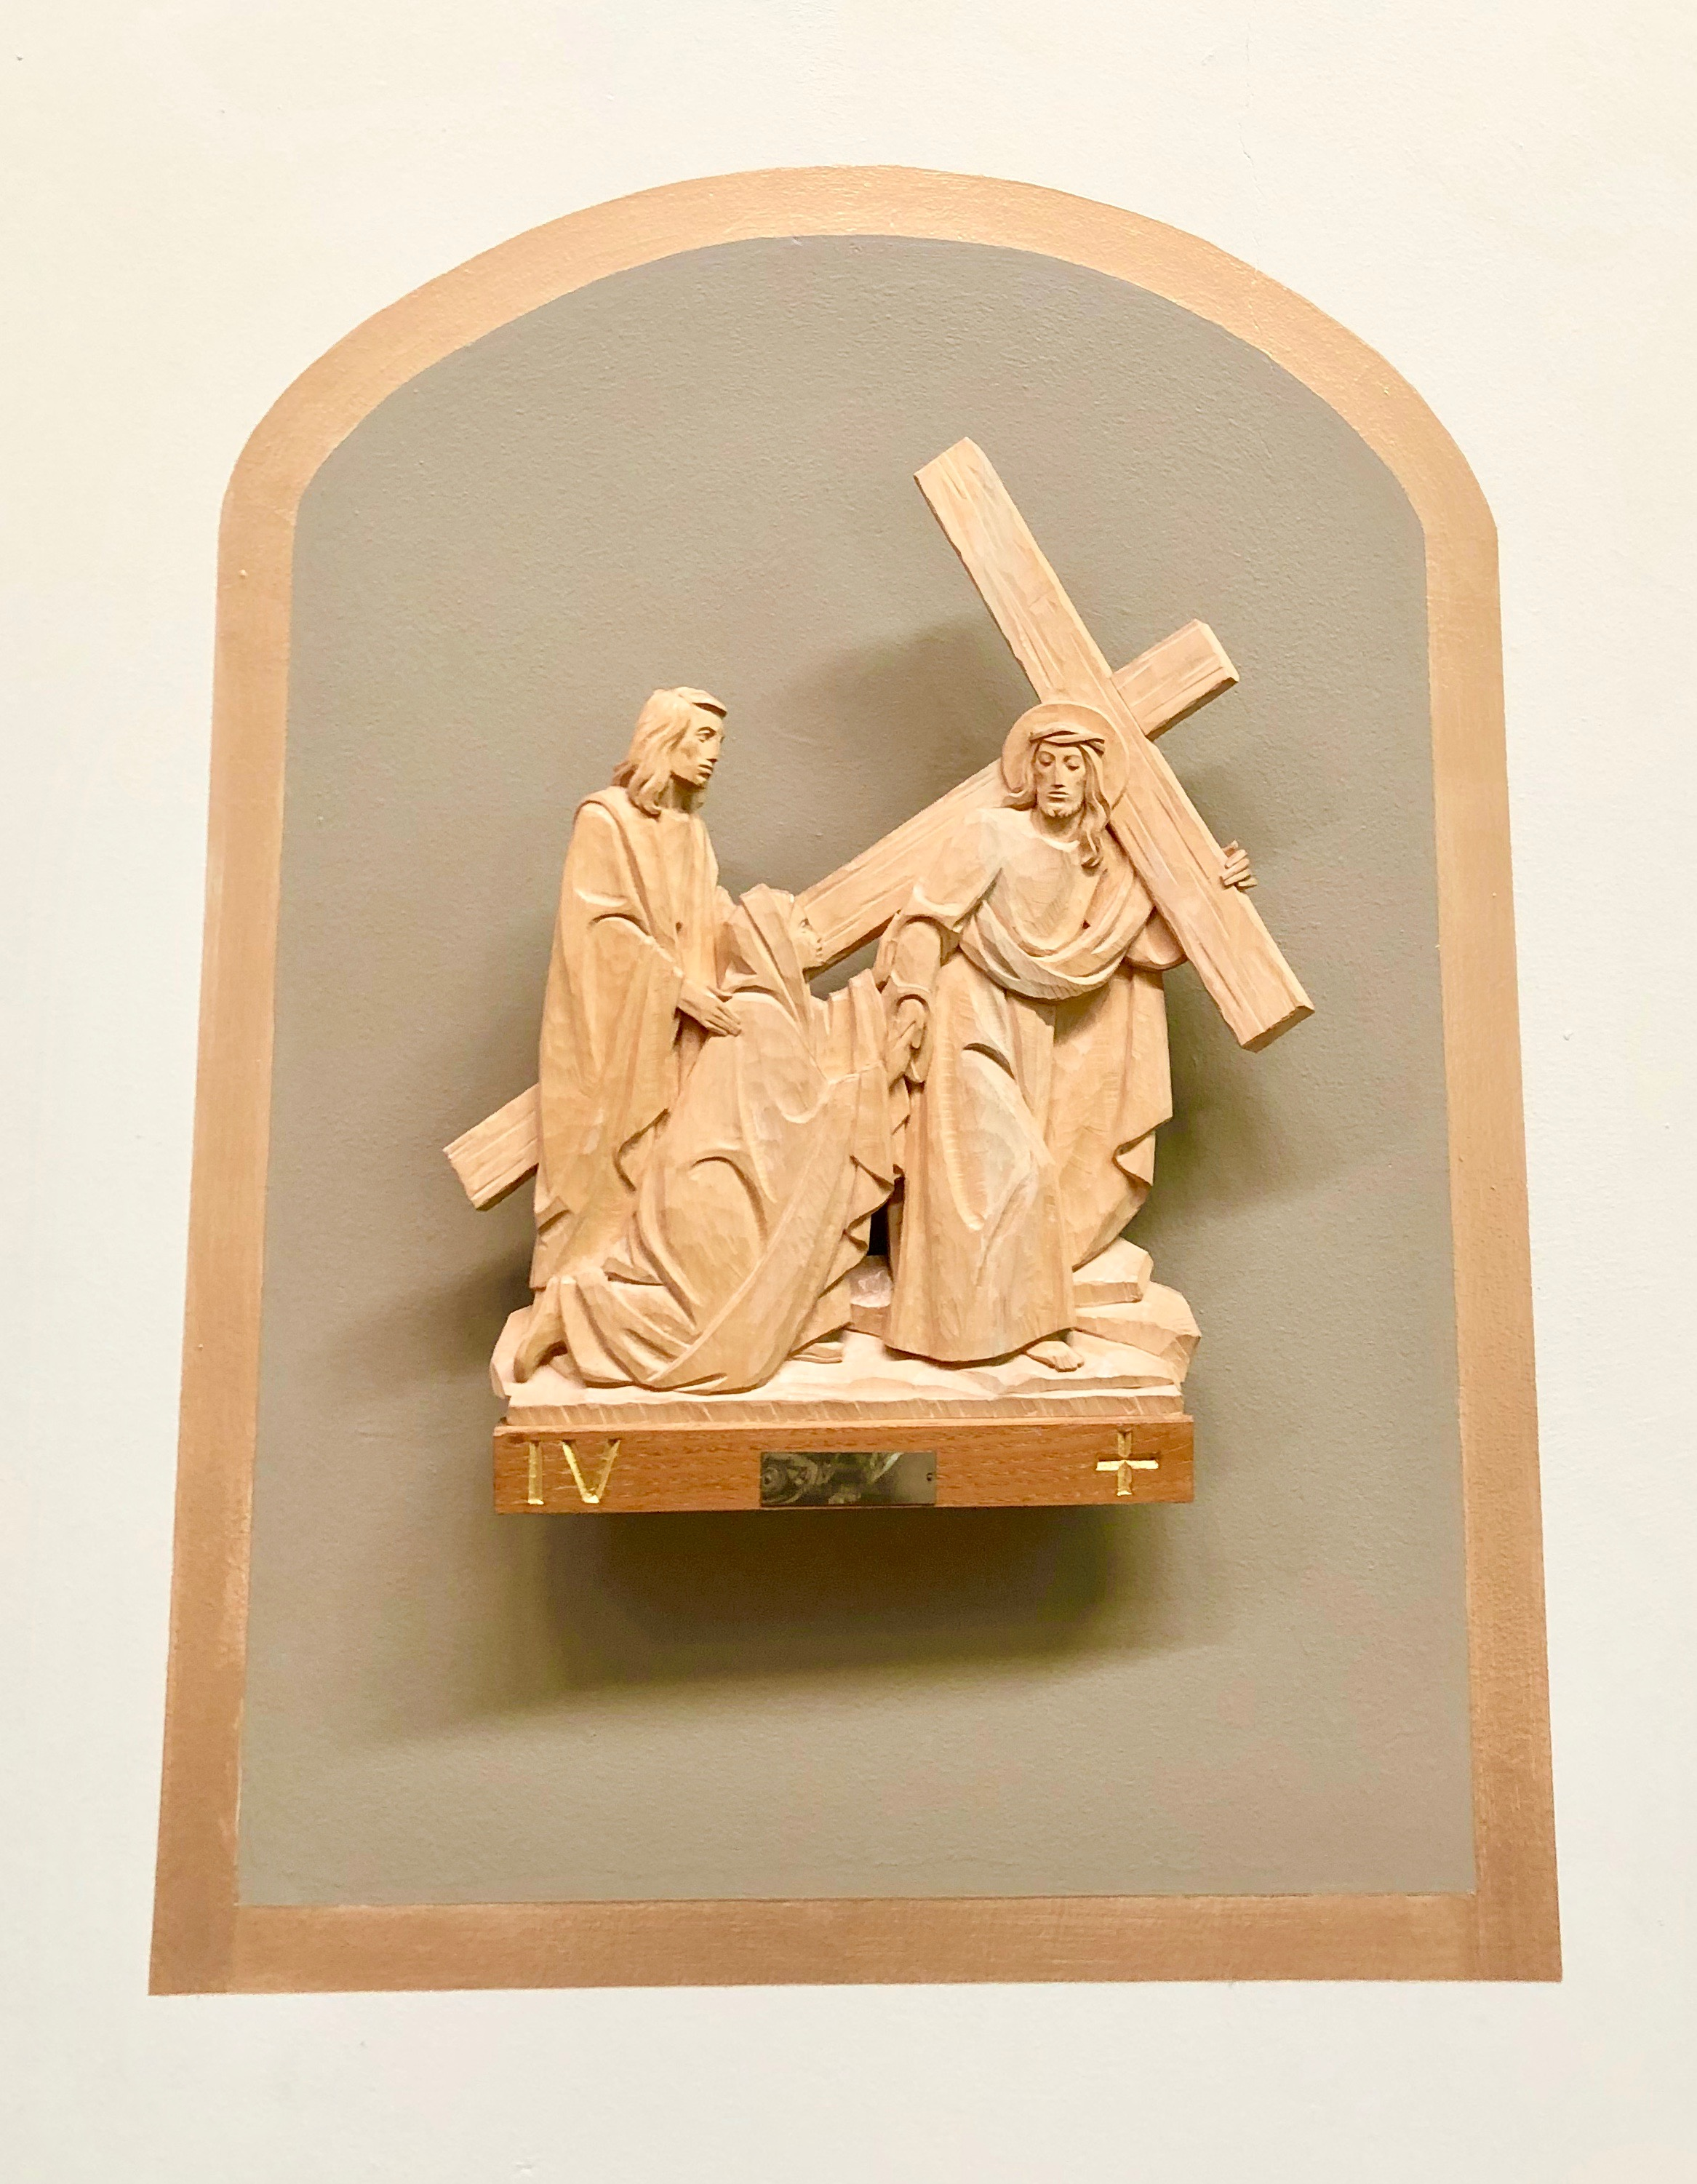 Wood Station of the Cross, Jesus Cruifixion, St Joseph's Catholic Church, Capitola, California, Lanzini.jpeg